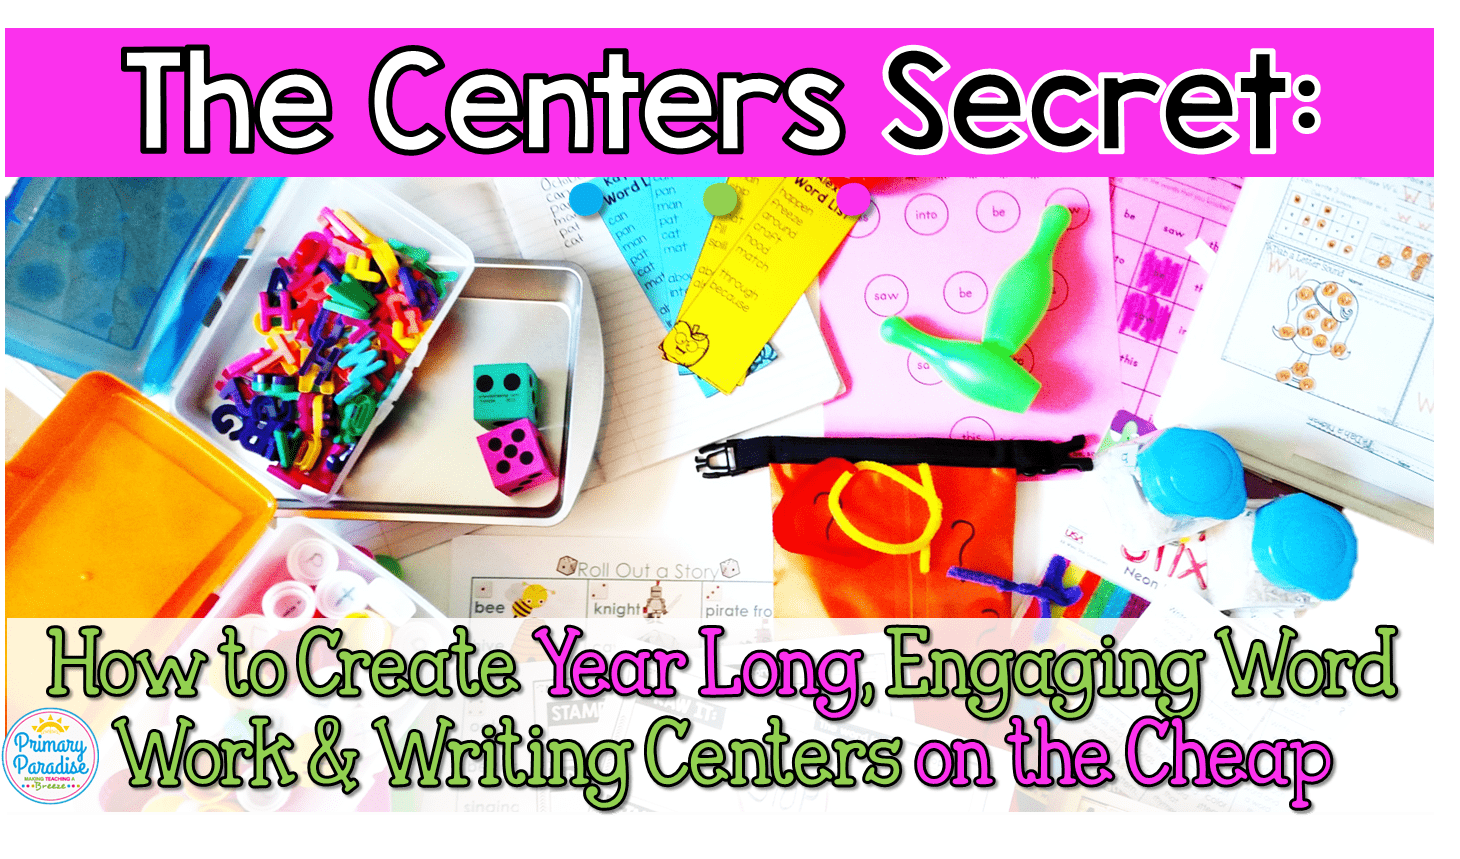 Year Long, Engaging Word Word and Writing Centers